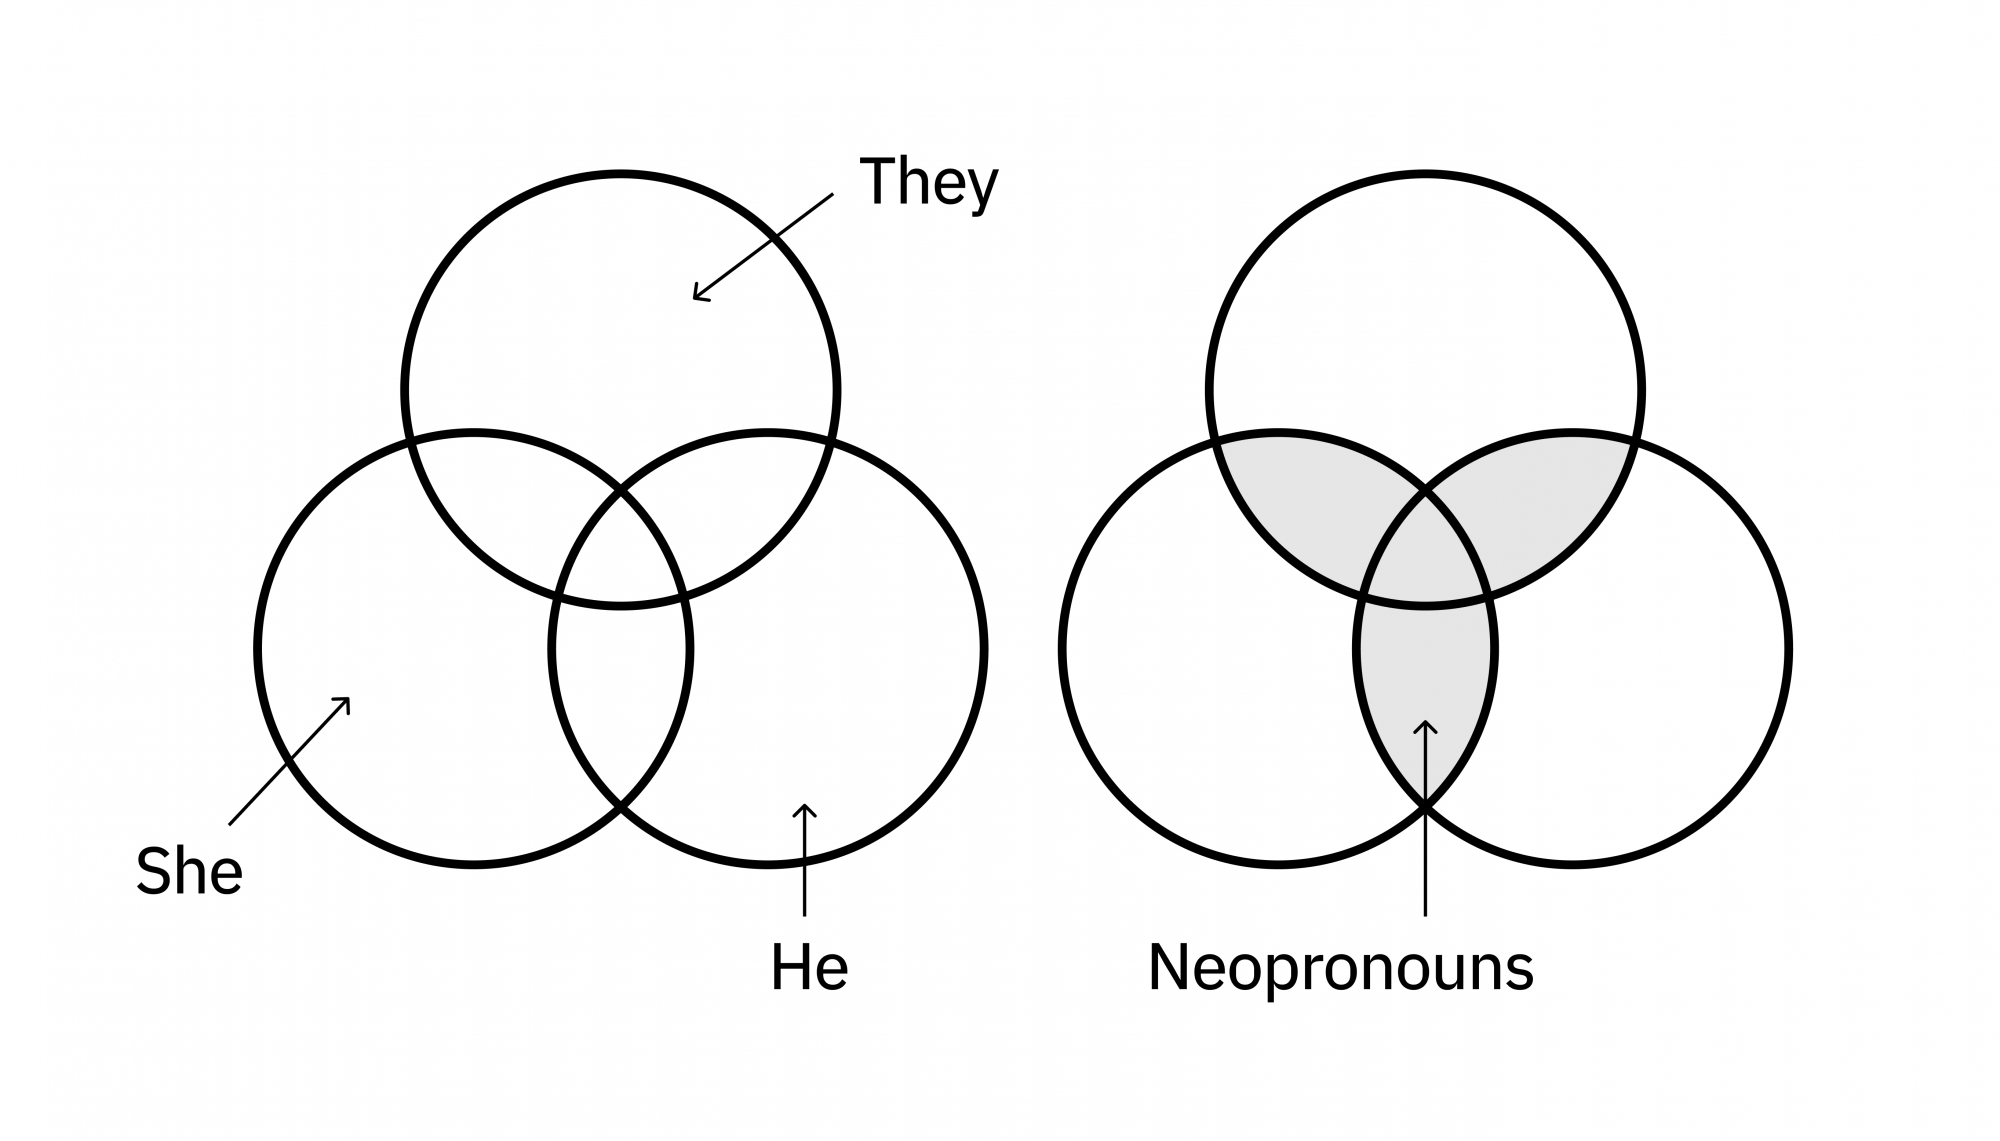 A diagram which explains the pronoun icon and why the symbolism of three overlapping circles work. Each segment created is labeled with They, She, He, or Neopronouns.